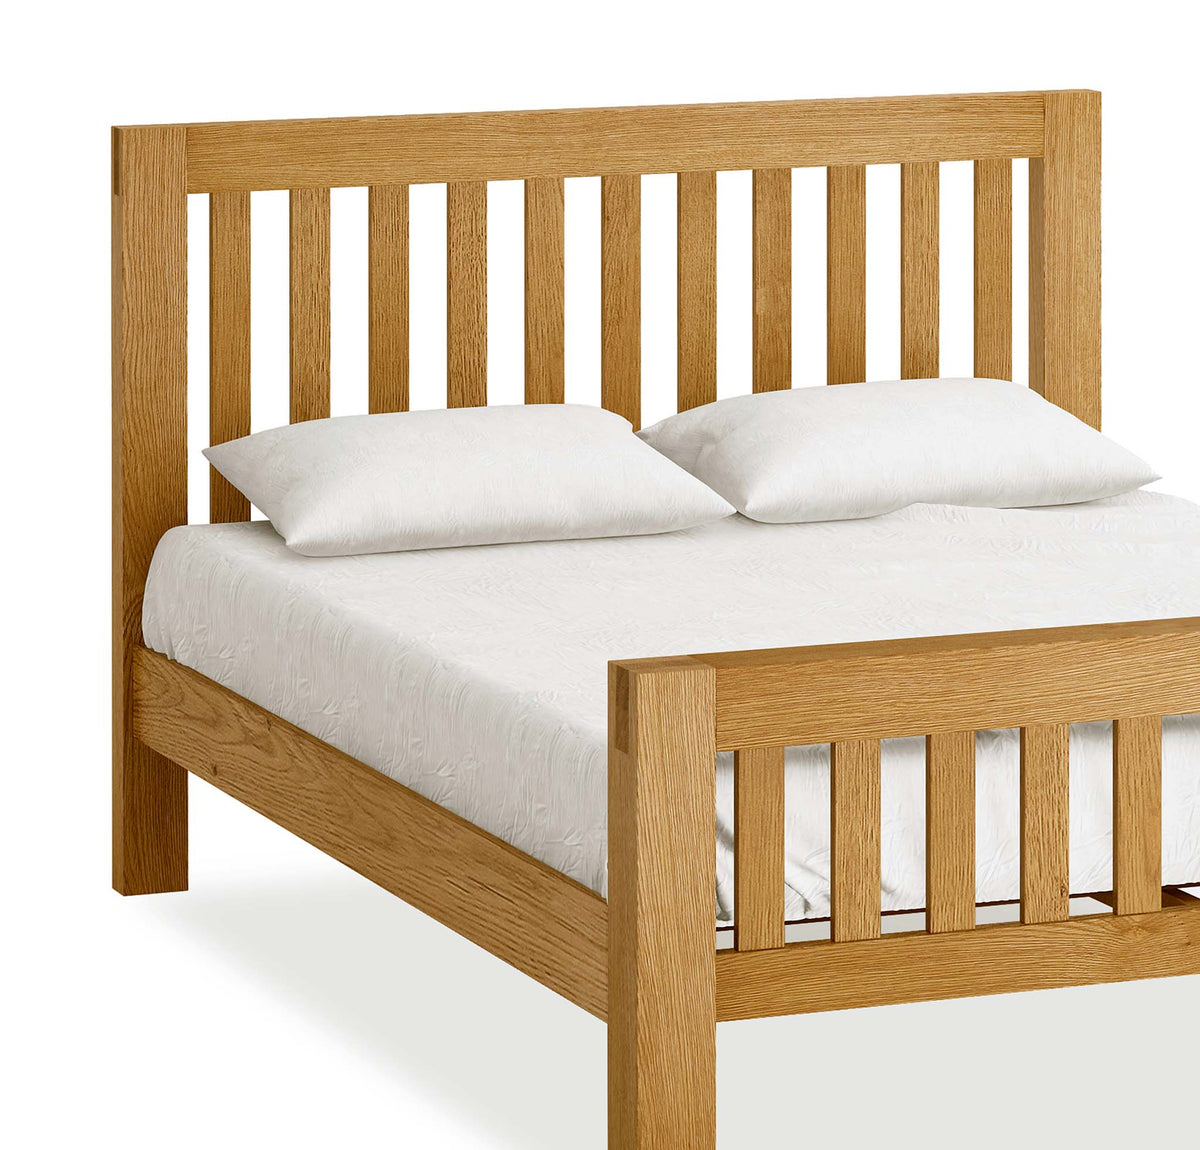 The Abbey Grande Wooden Oak Bed Frame Double or King Size - Close Up of Header